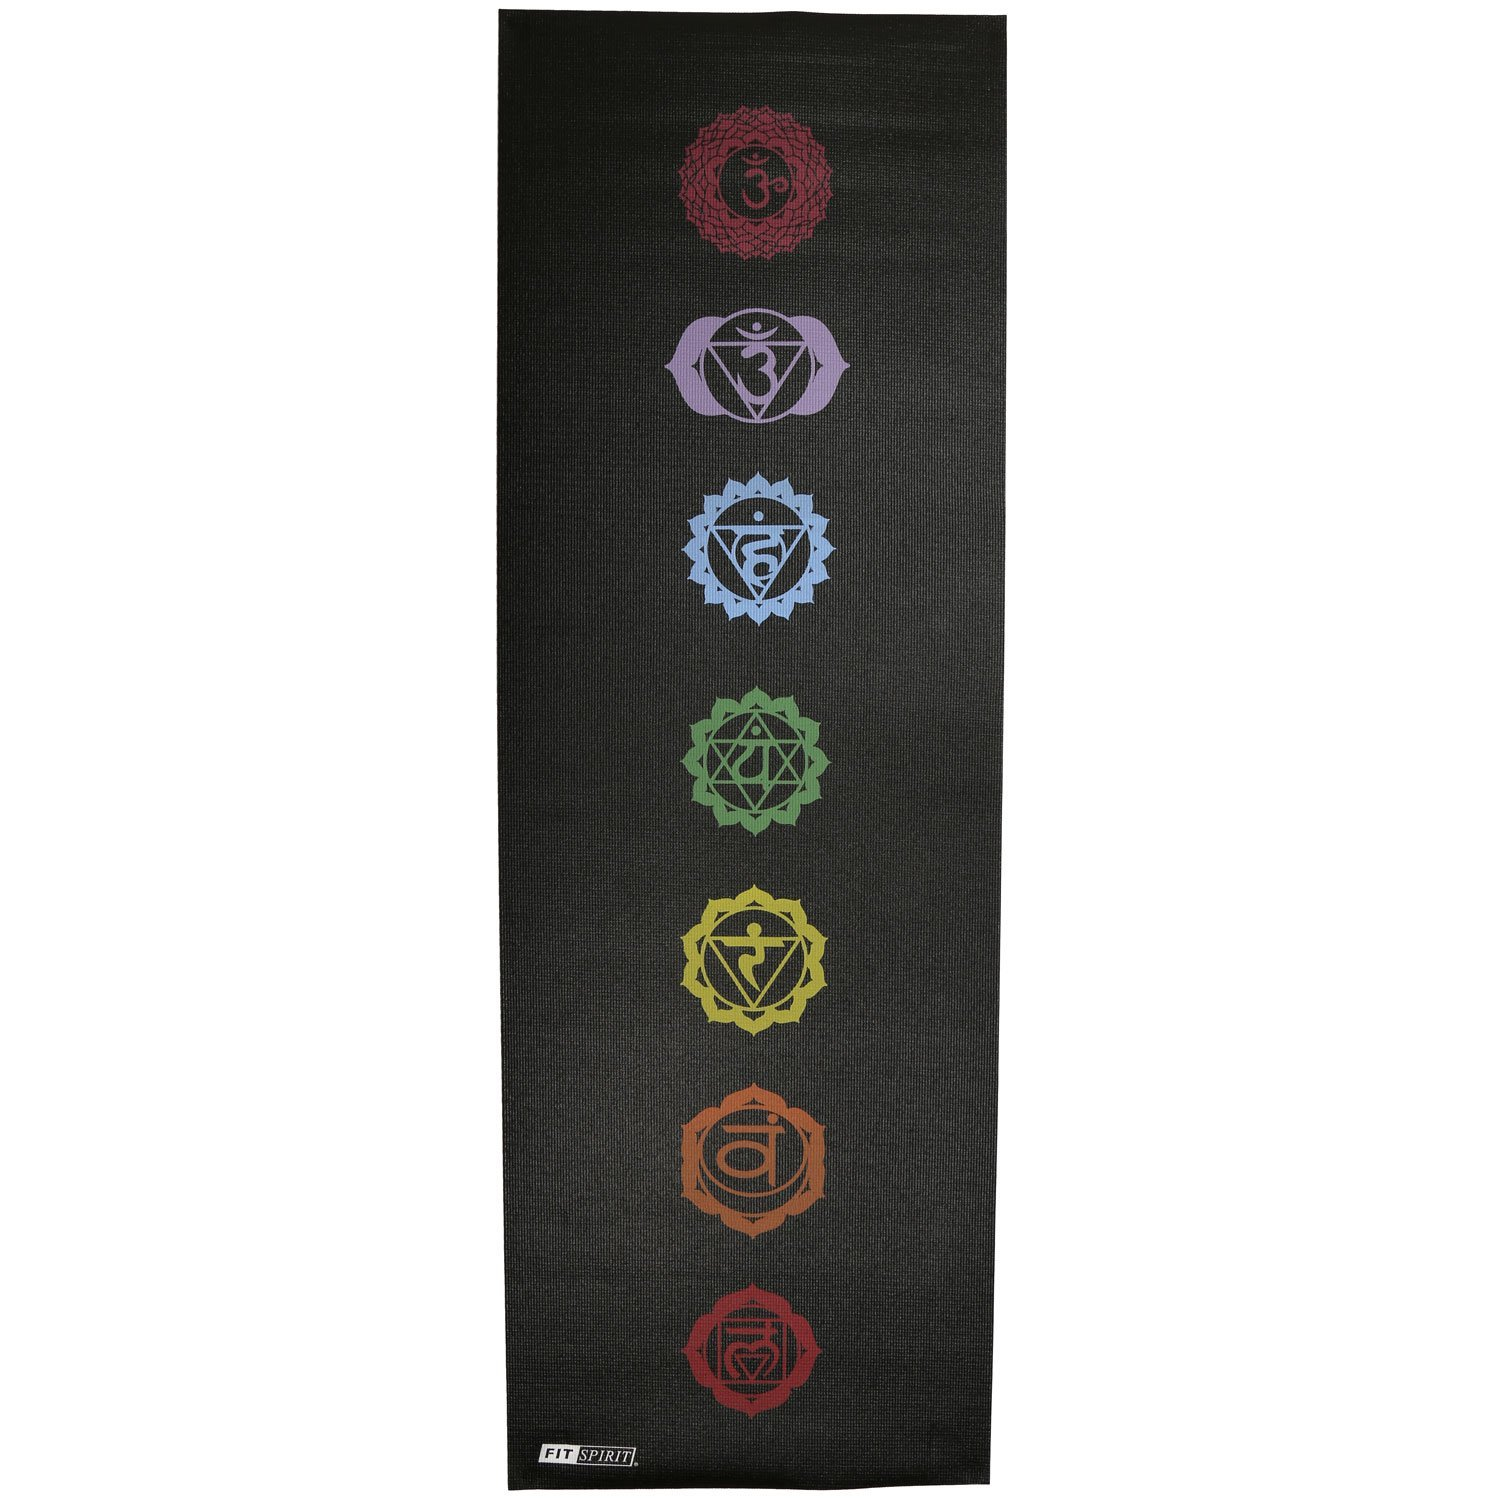 floral delhi com india fitness printed mats wholesaler gravolite supplier dark green mat yoga clonko design